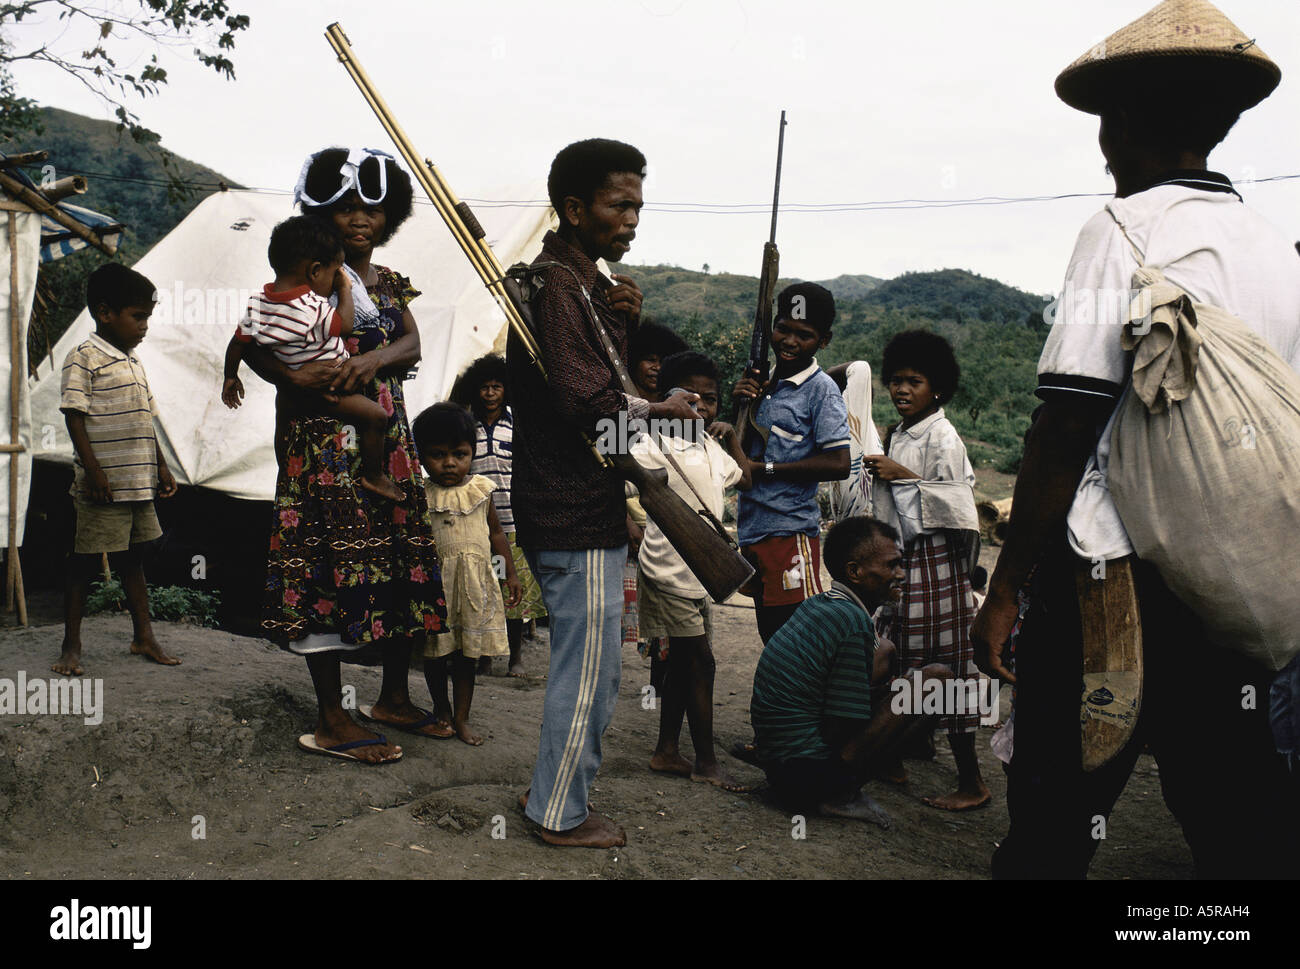 MOUNT PINATUBO DISASTER FEBRUARY 1991 MALE AETAS GET READY TO LEAVE CAMP TO CONTINUE PREPARING NEW SETTLEMENT IN THE MOUNTAINS - Stock Image